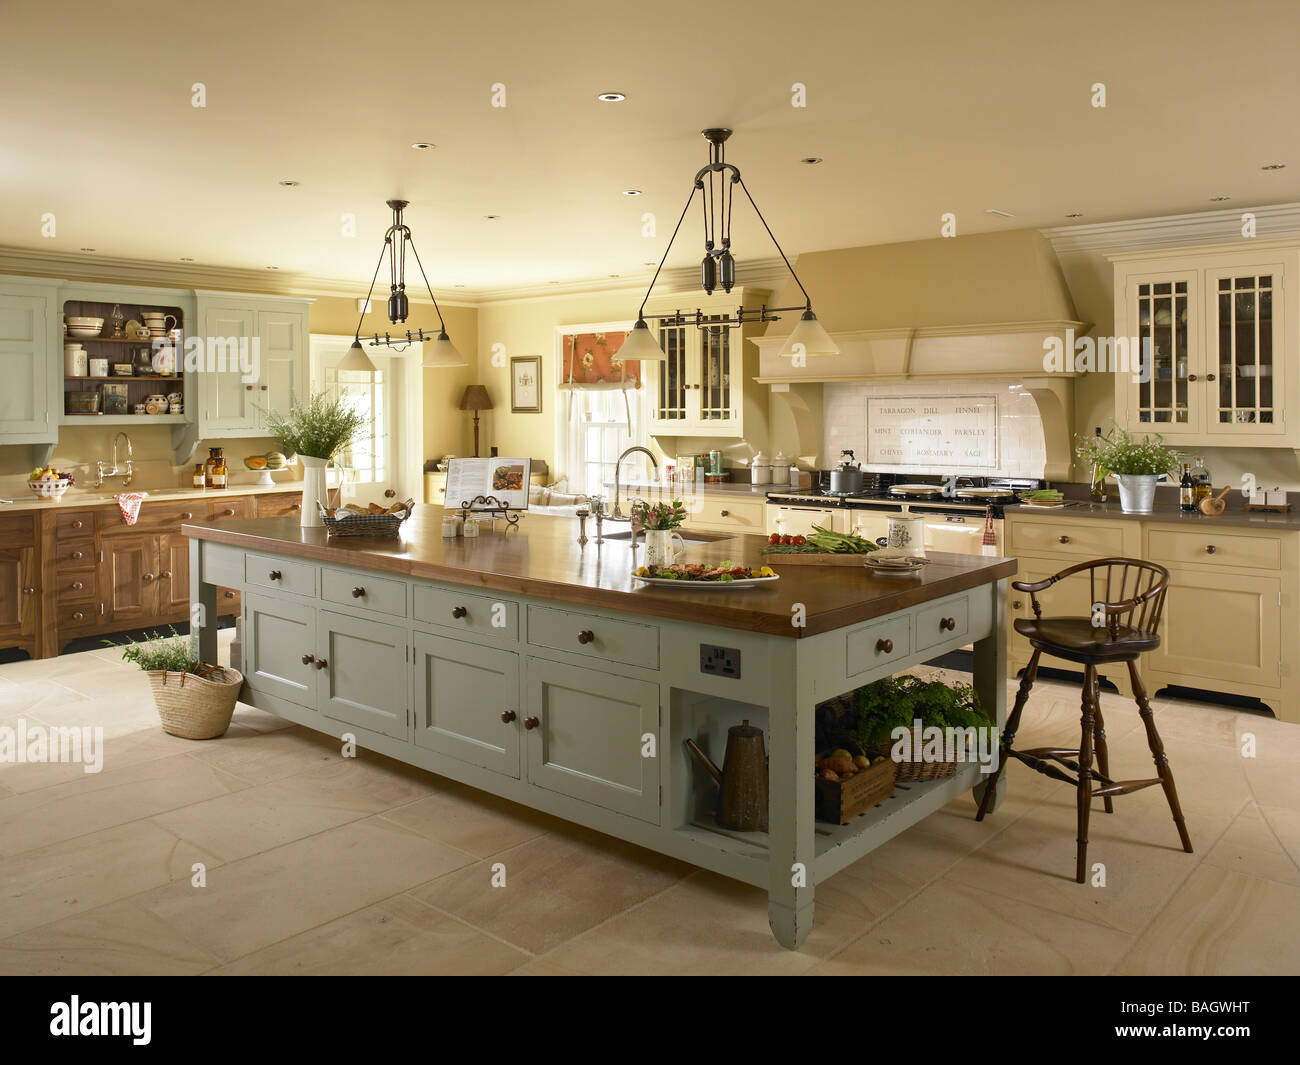 large kitchen island. A large kitchen island unit Stock Photo  Royalty Free Image